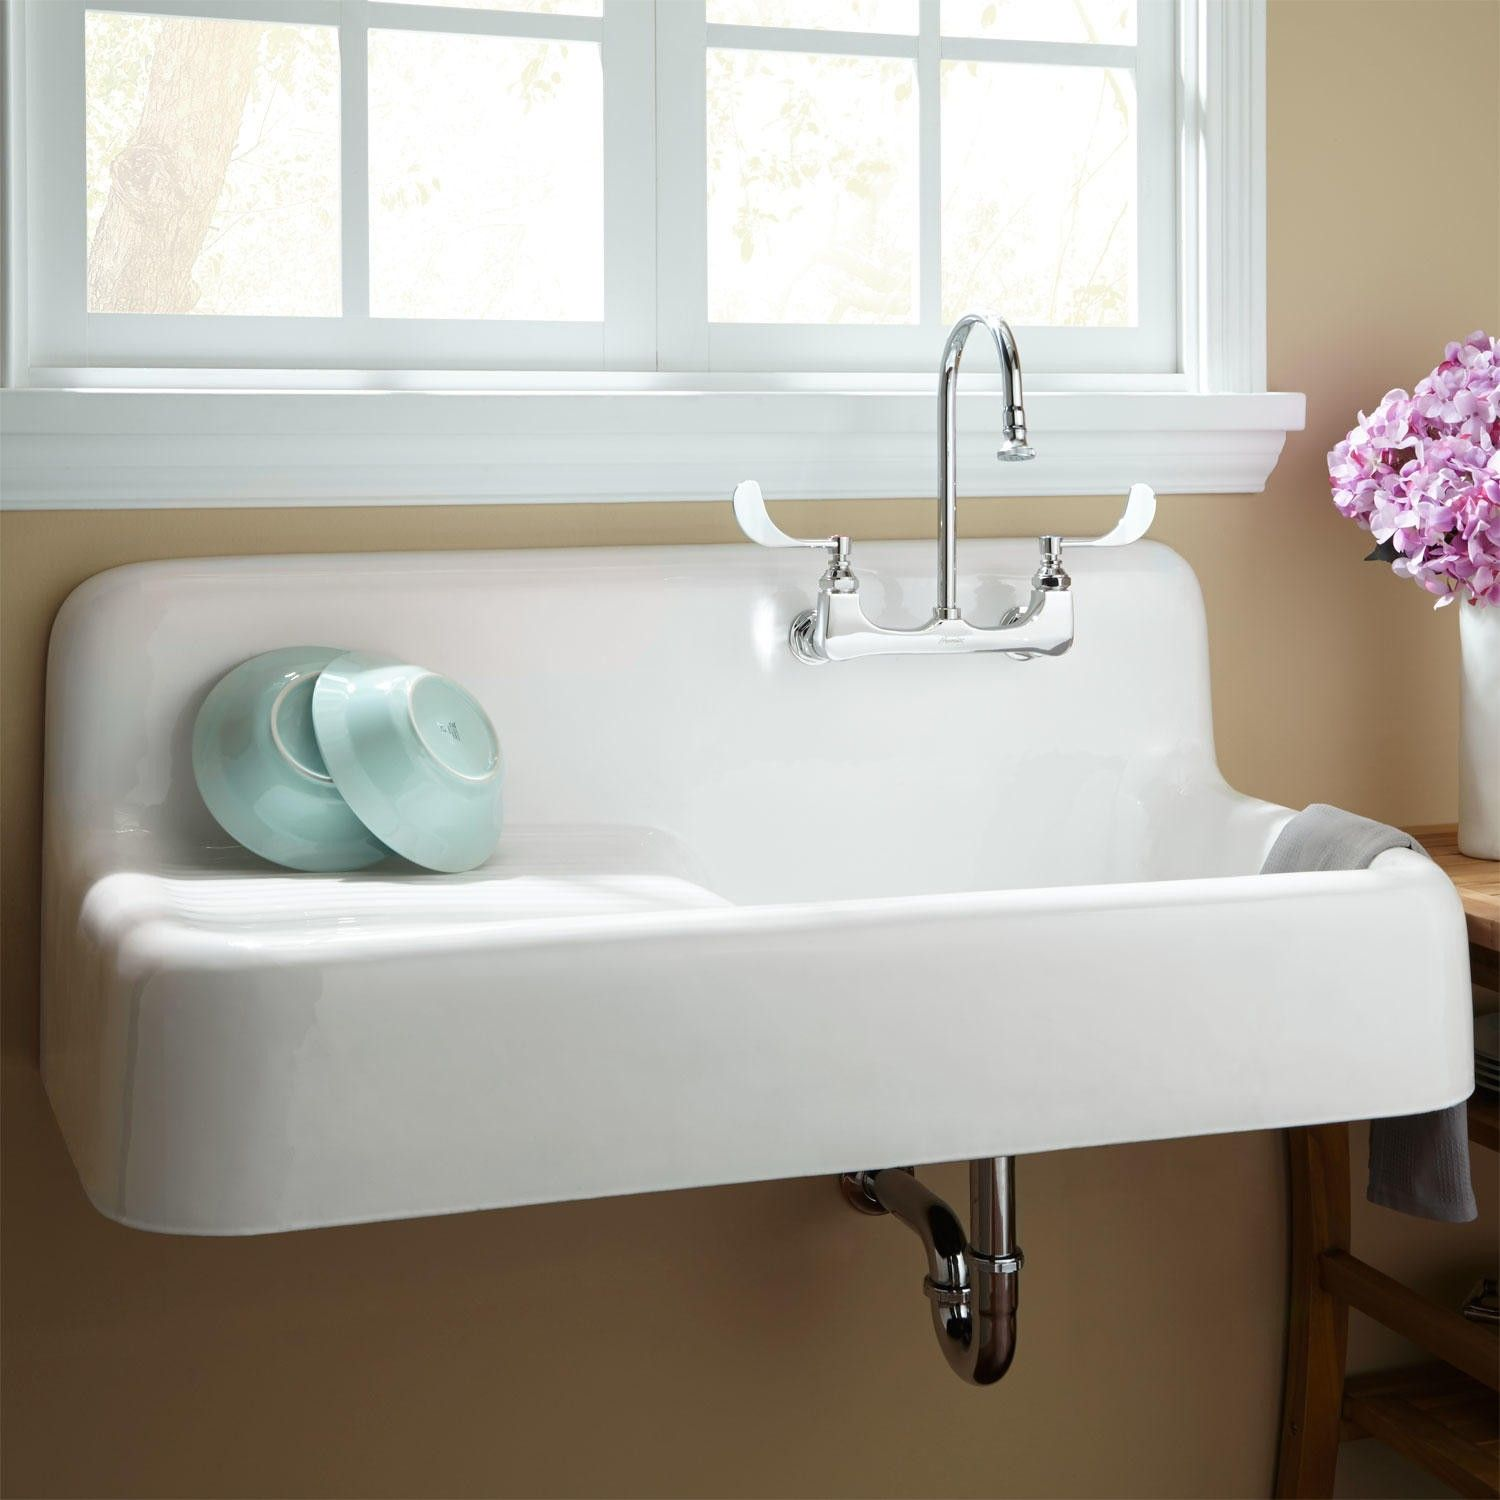 42 Quot Cast Iron Wall Mount Kitchen Sink With Drainboard